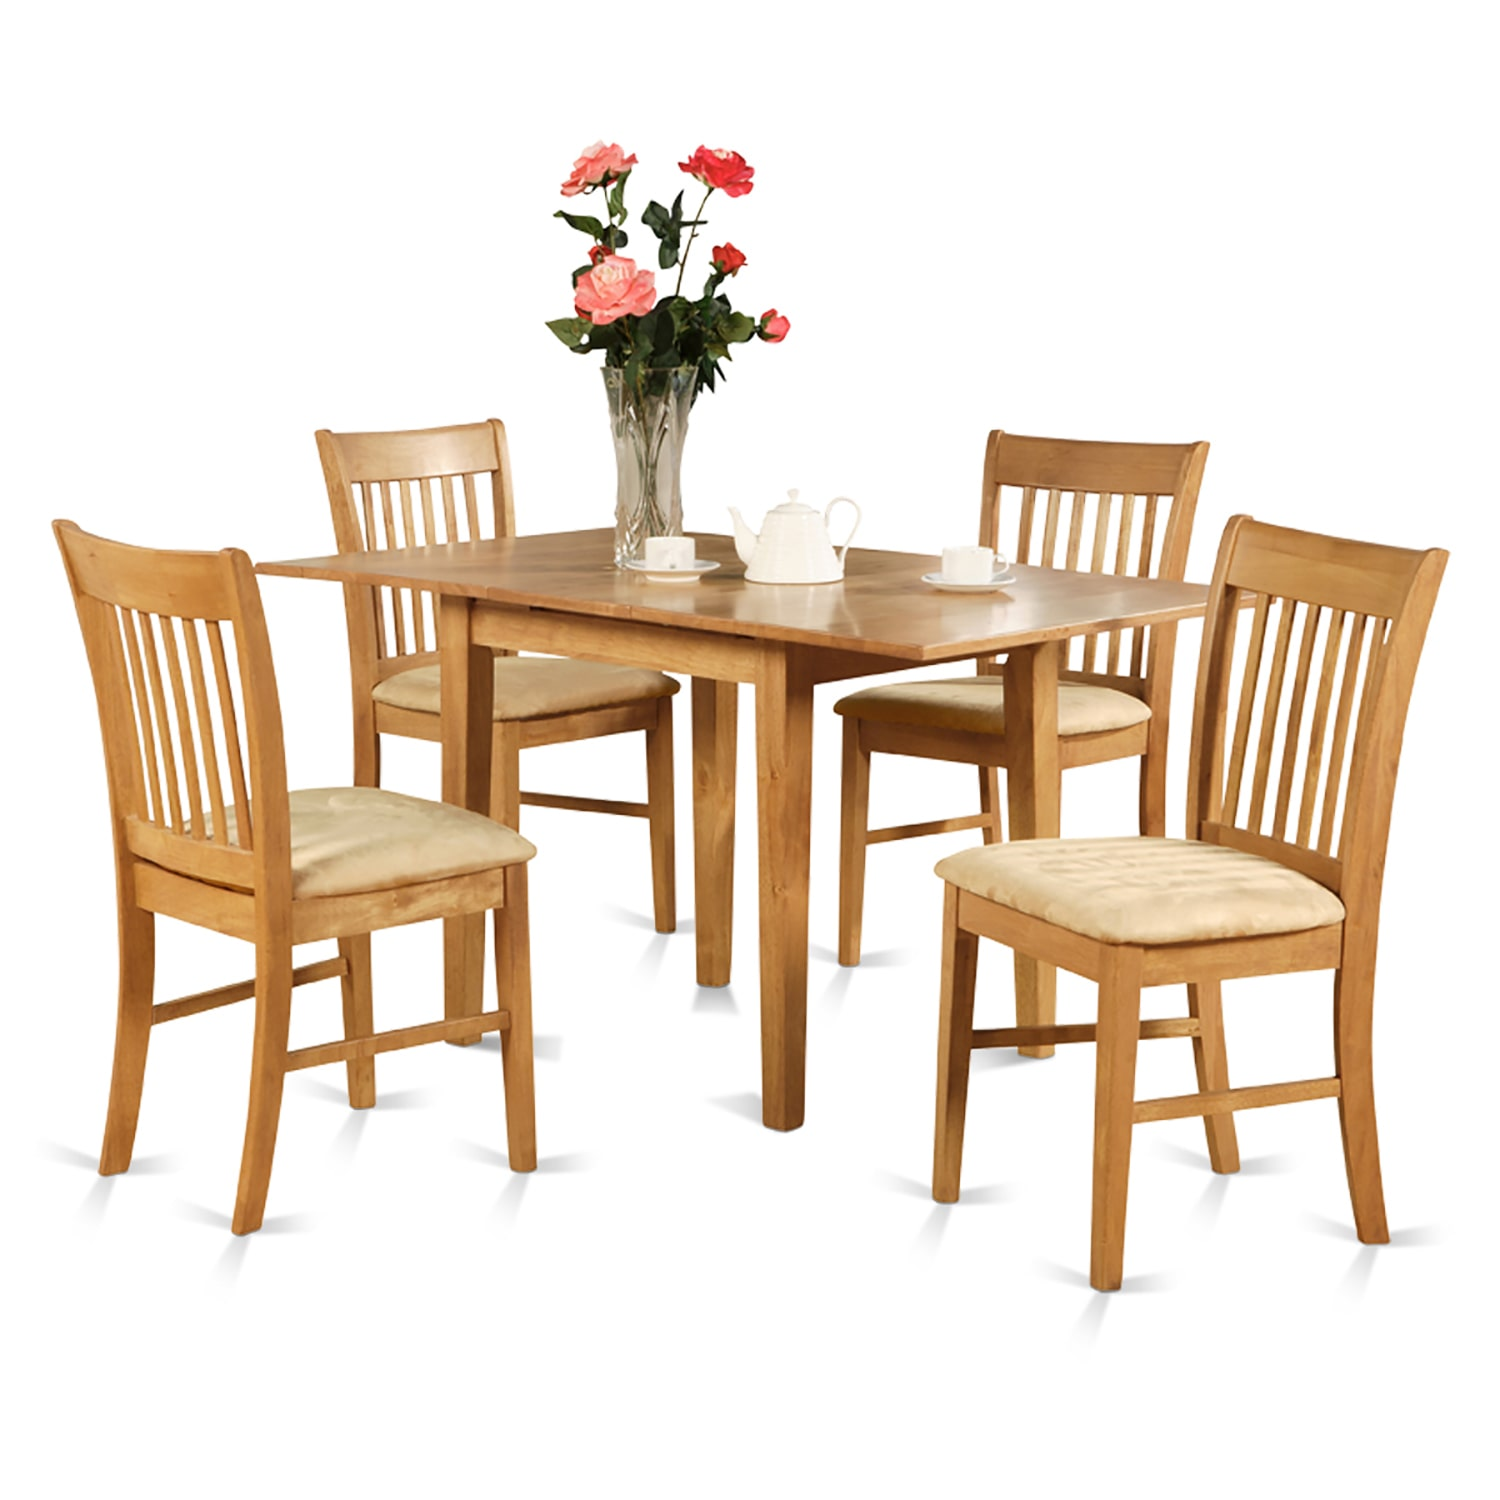 NOFK5-OAK-C 5 Piece dinette set for small spaces - table and 4 dining